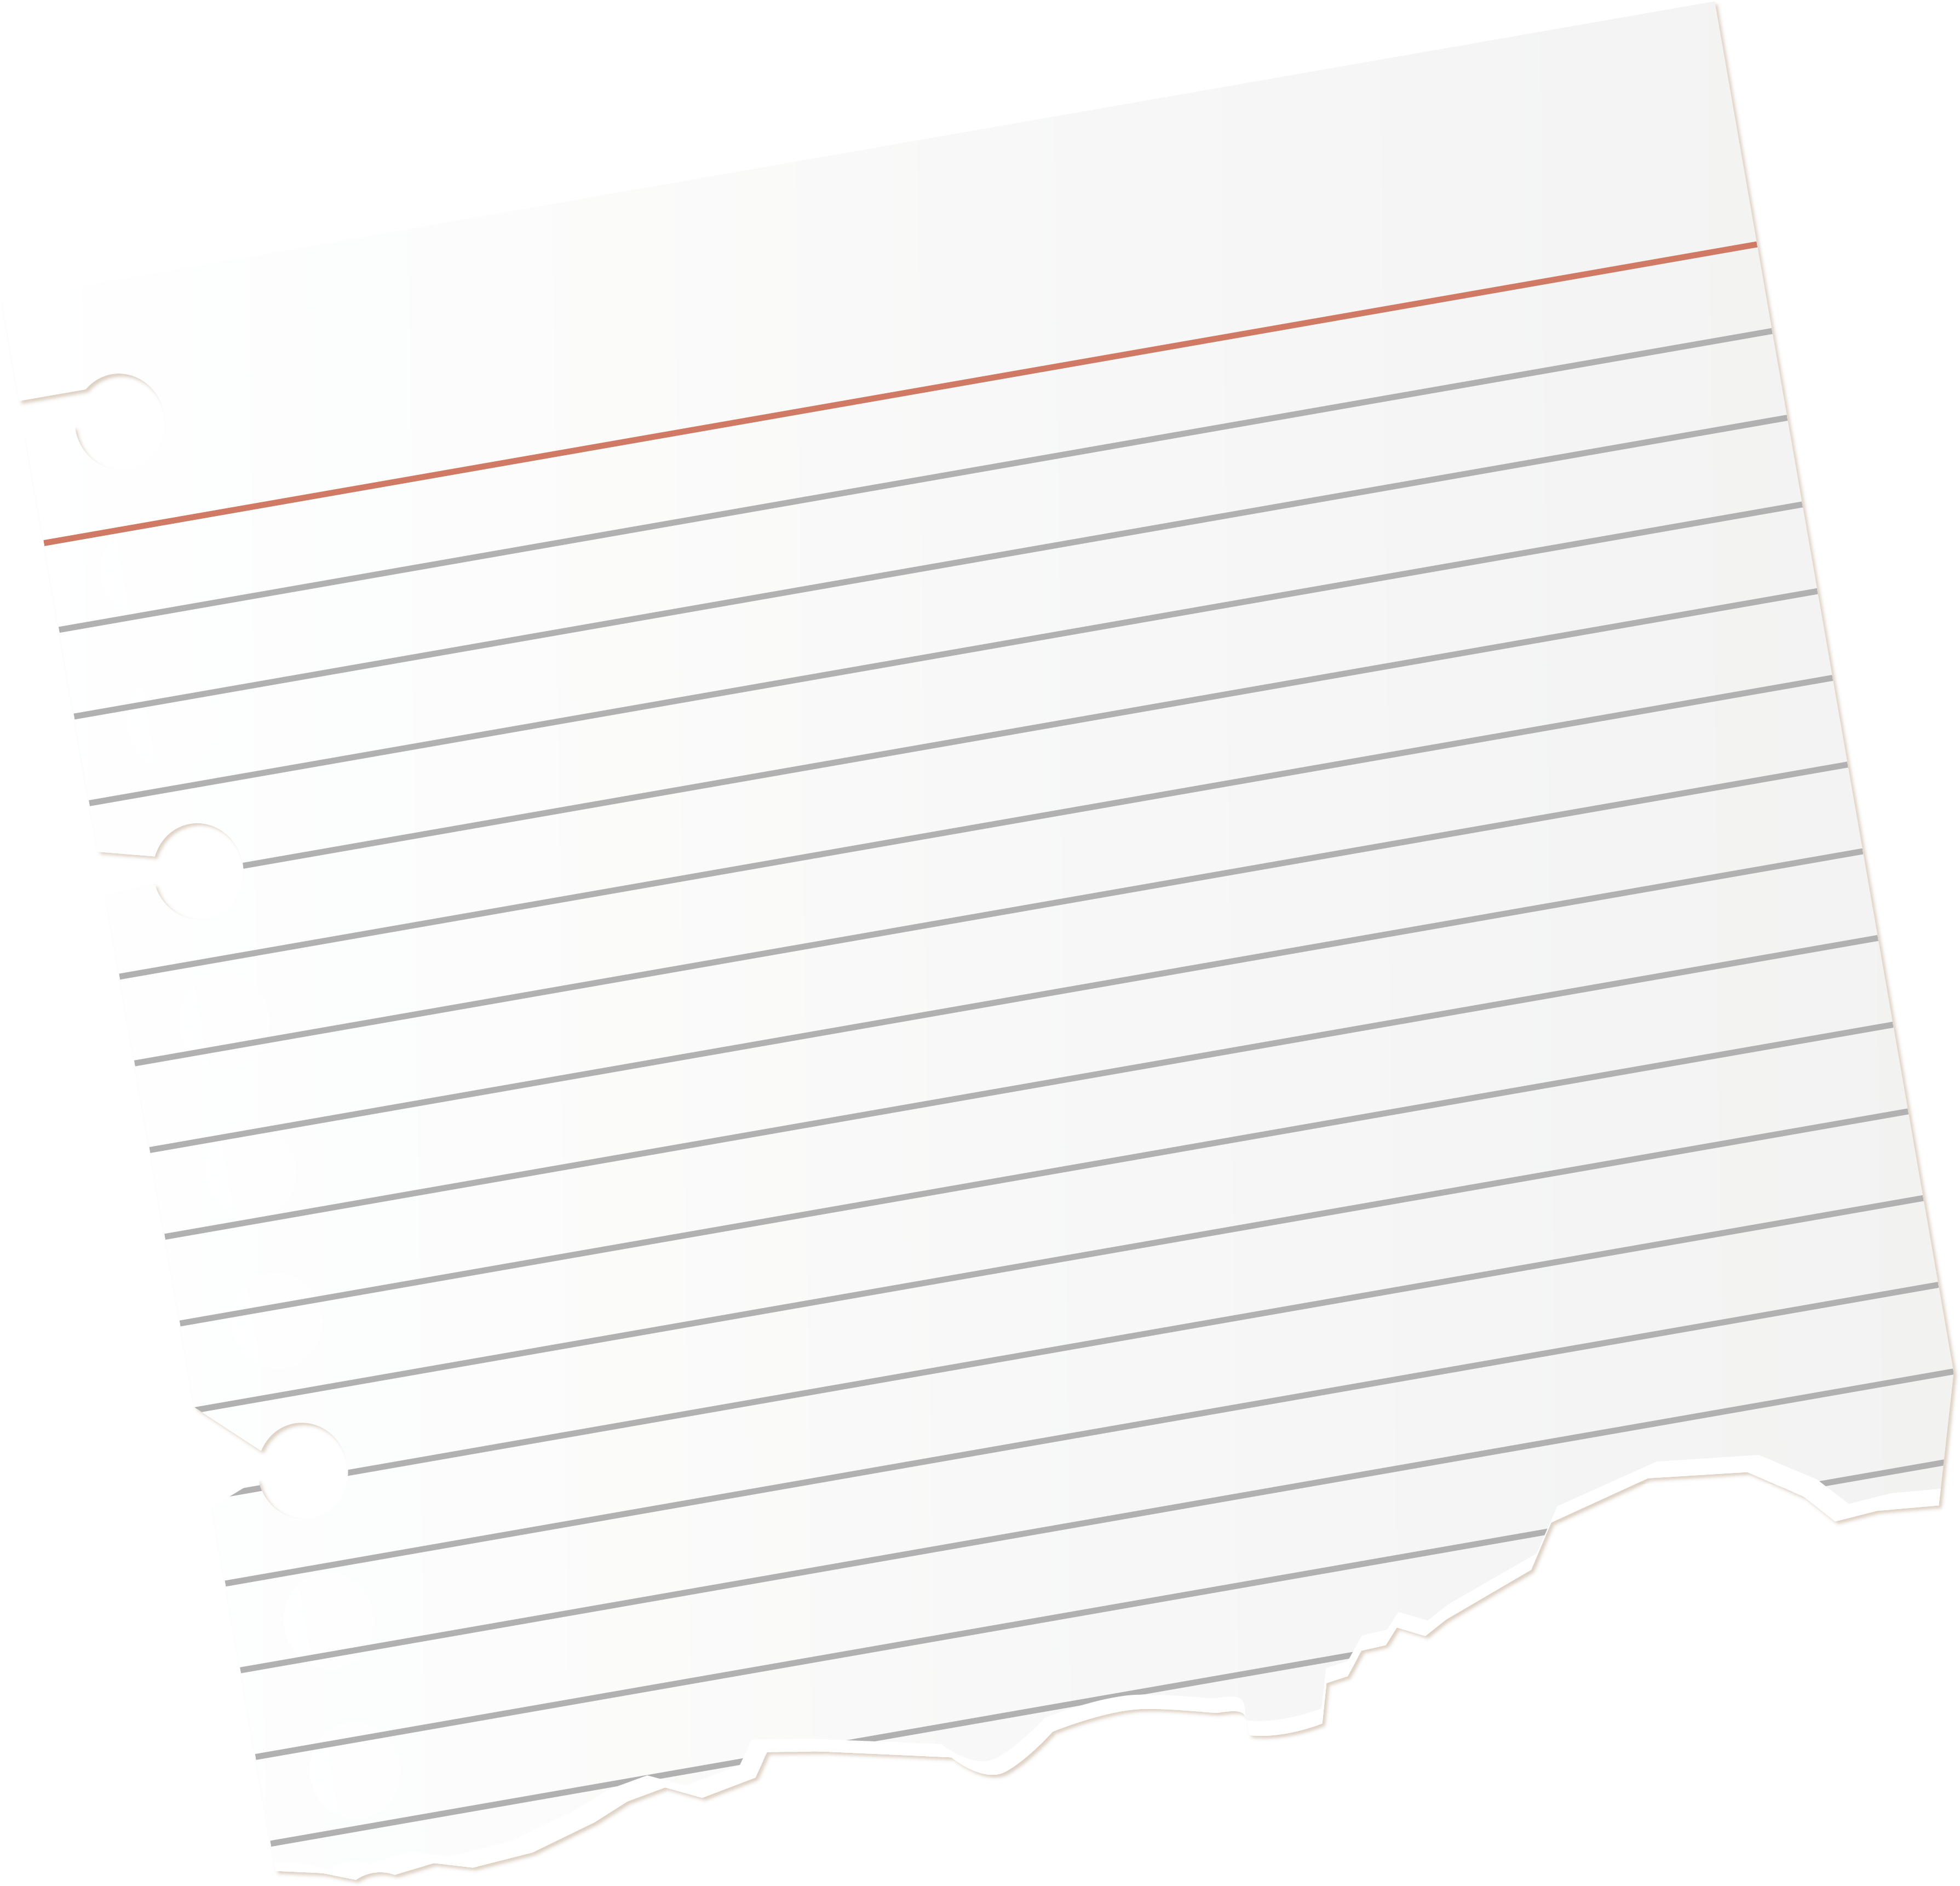 Torn notebook paper png. Download image with no